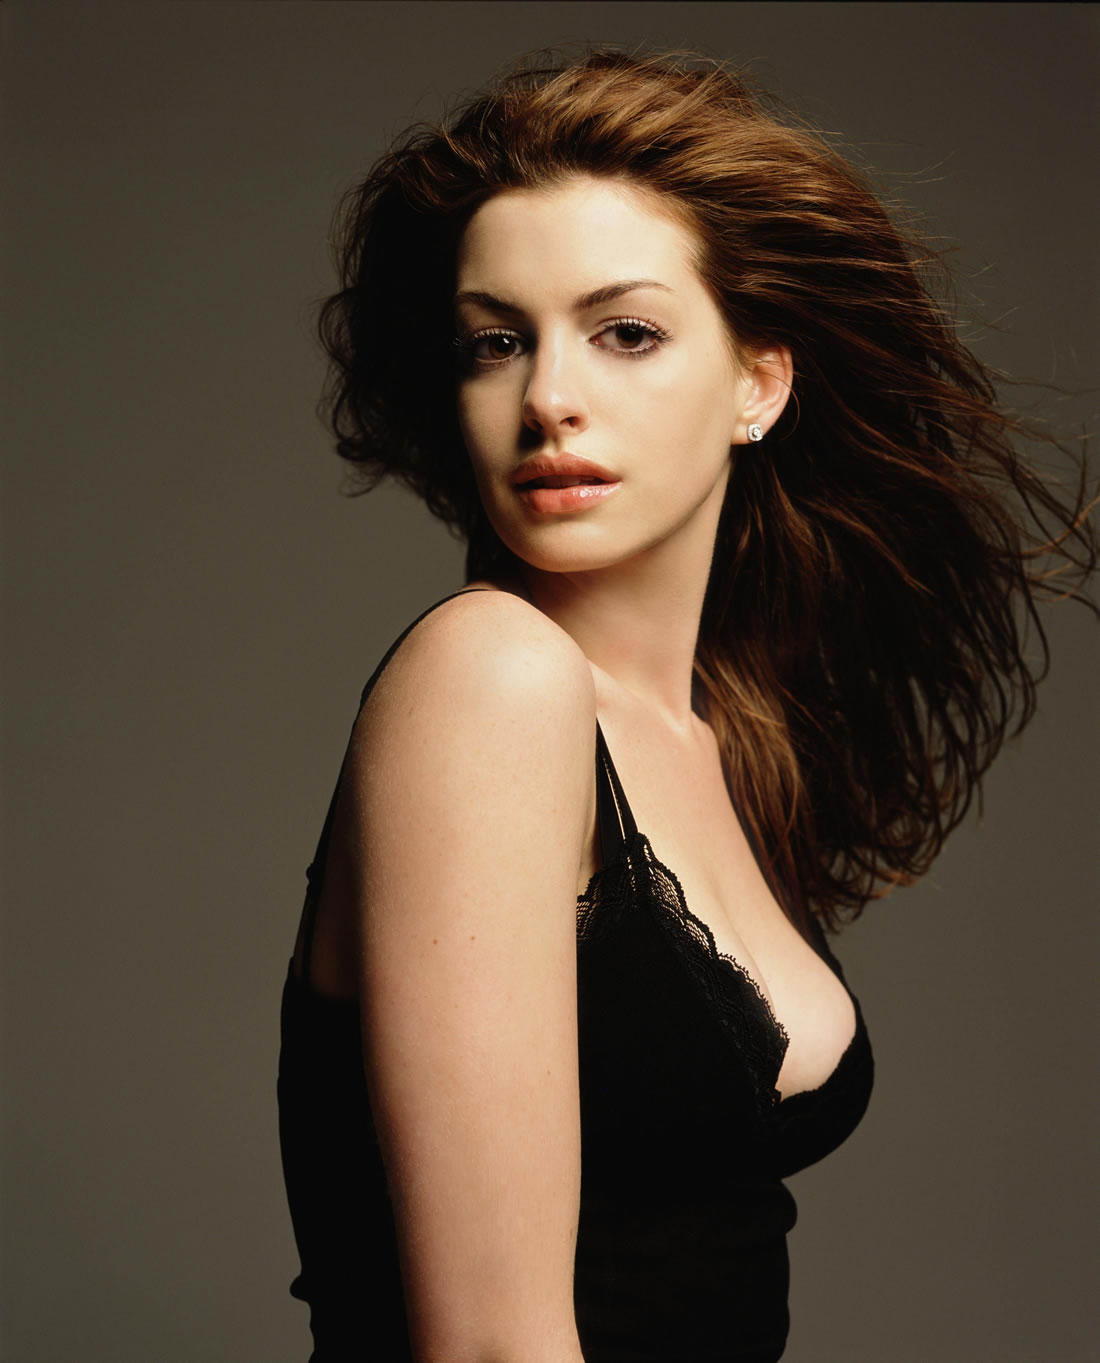 Anne Hathaway born November 12, 1982 (age 35)